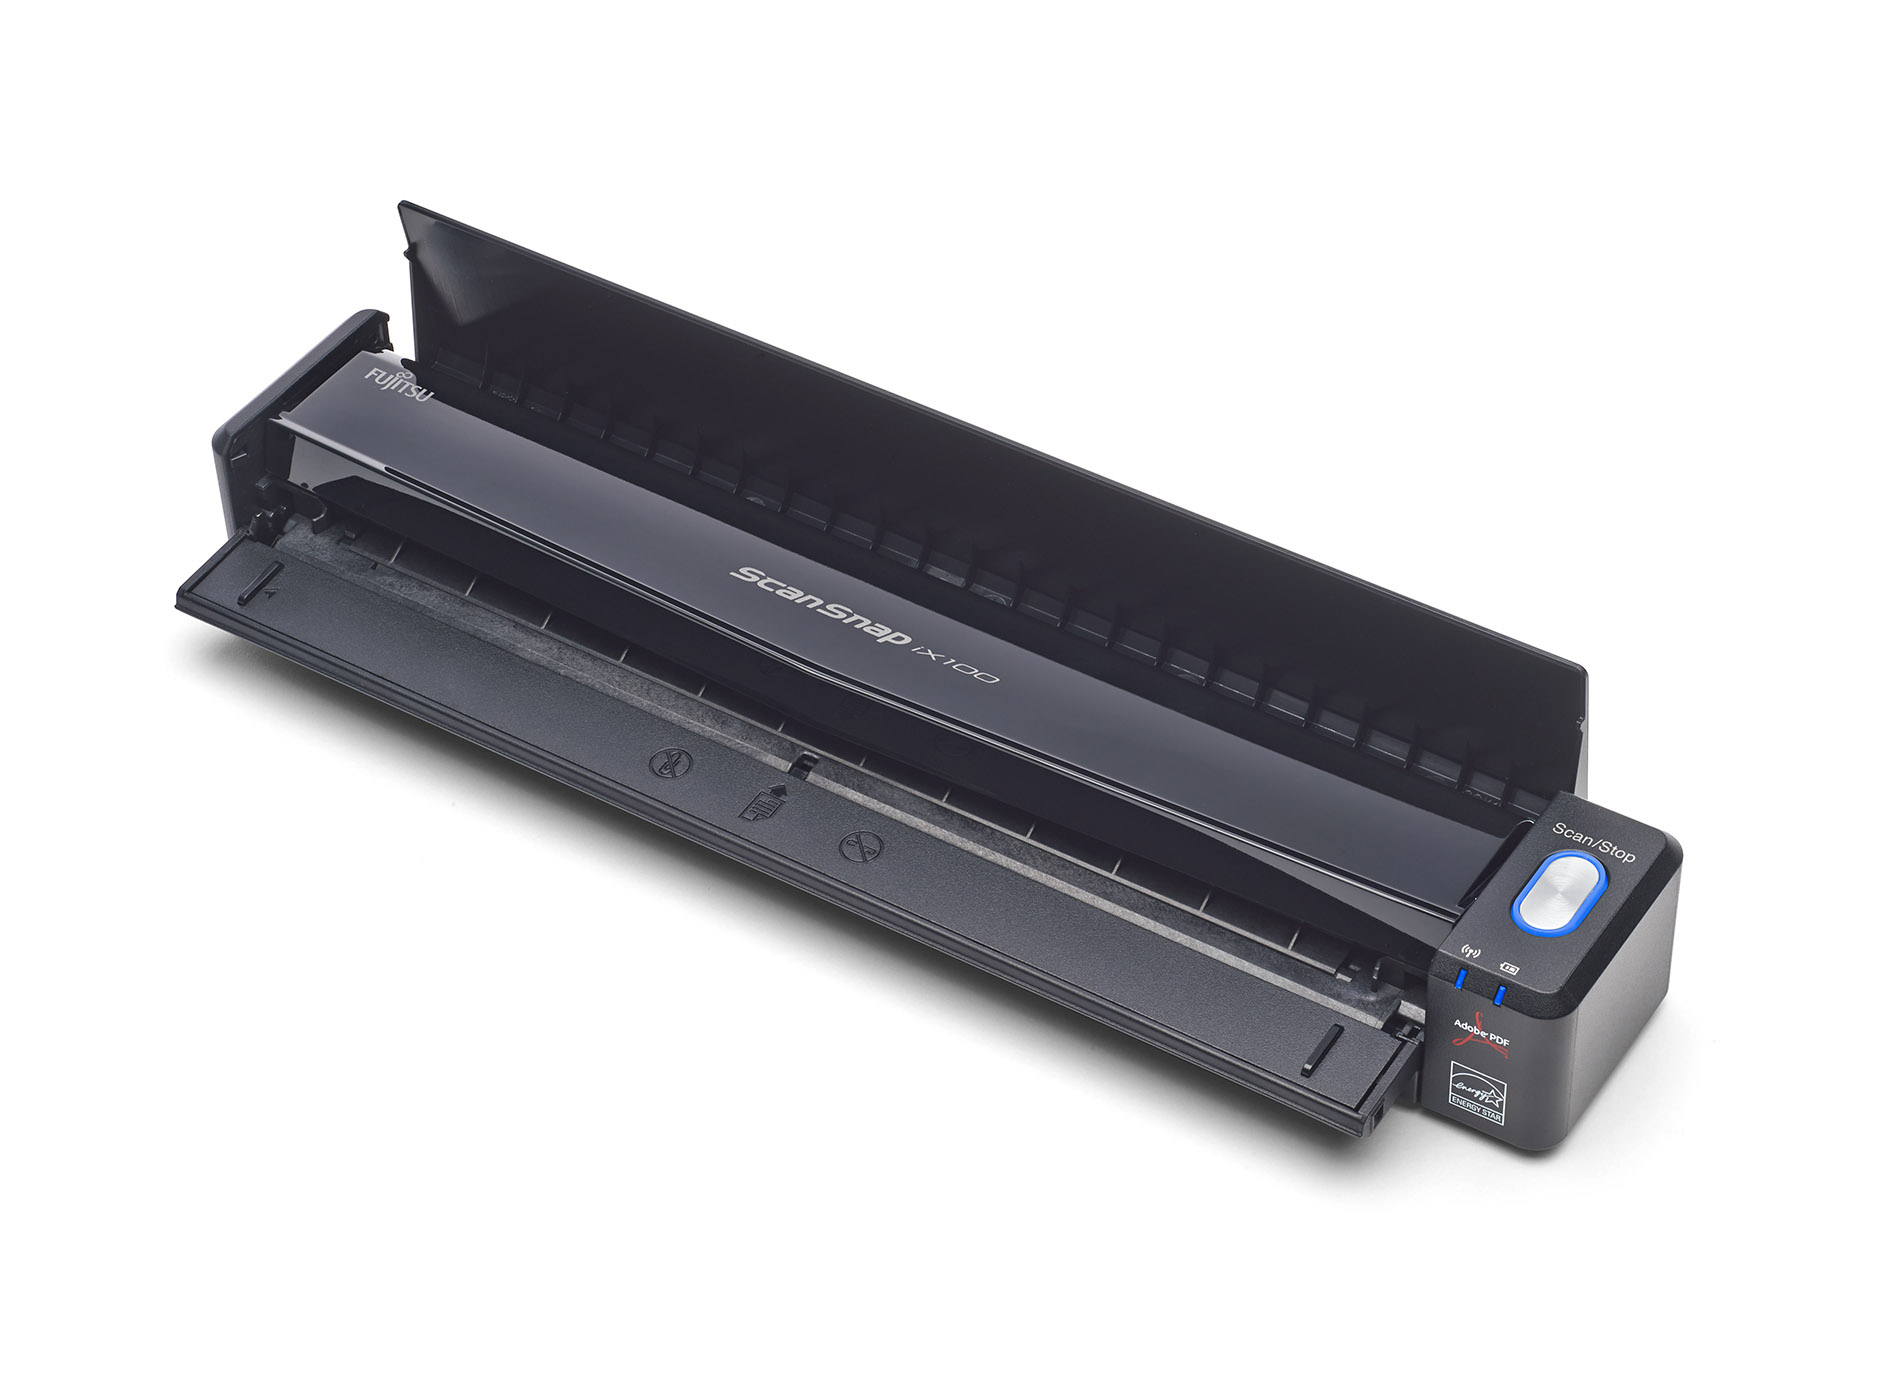 Scansnap scan anywhere and anytime fujitsu europe - Best document scanner for home office ...